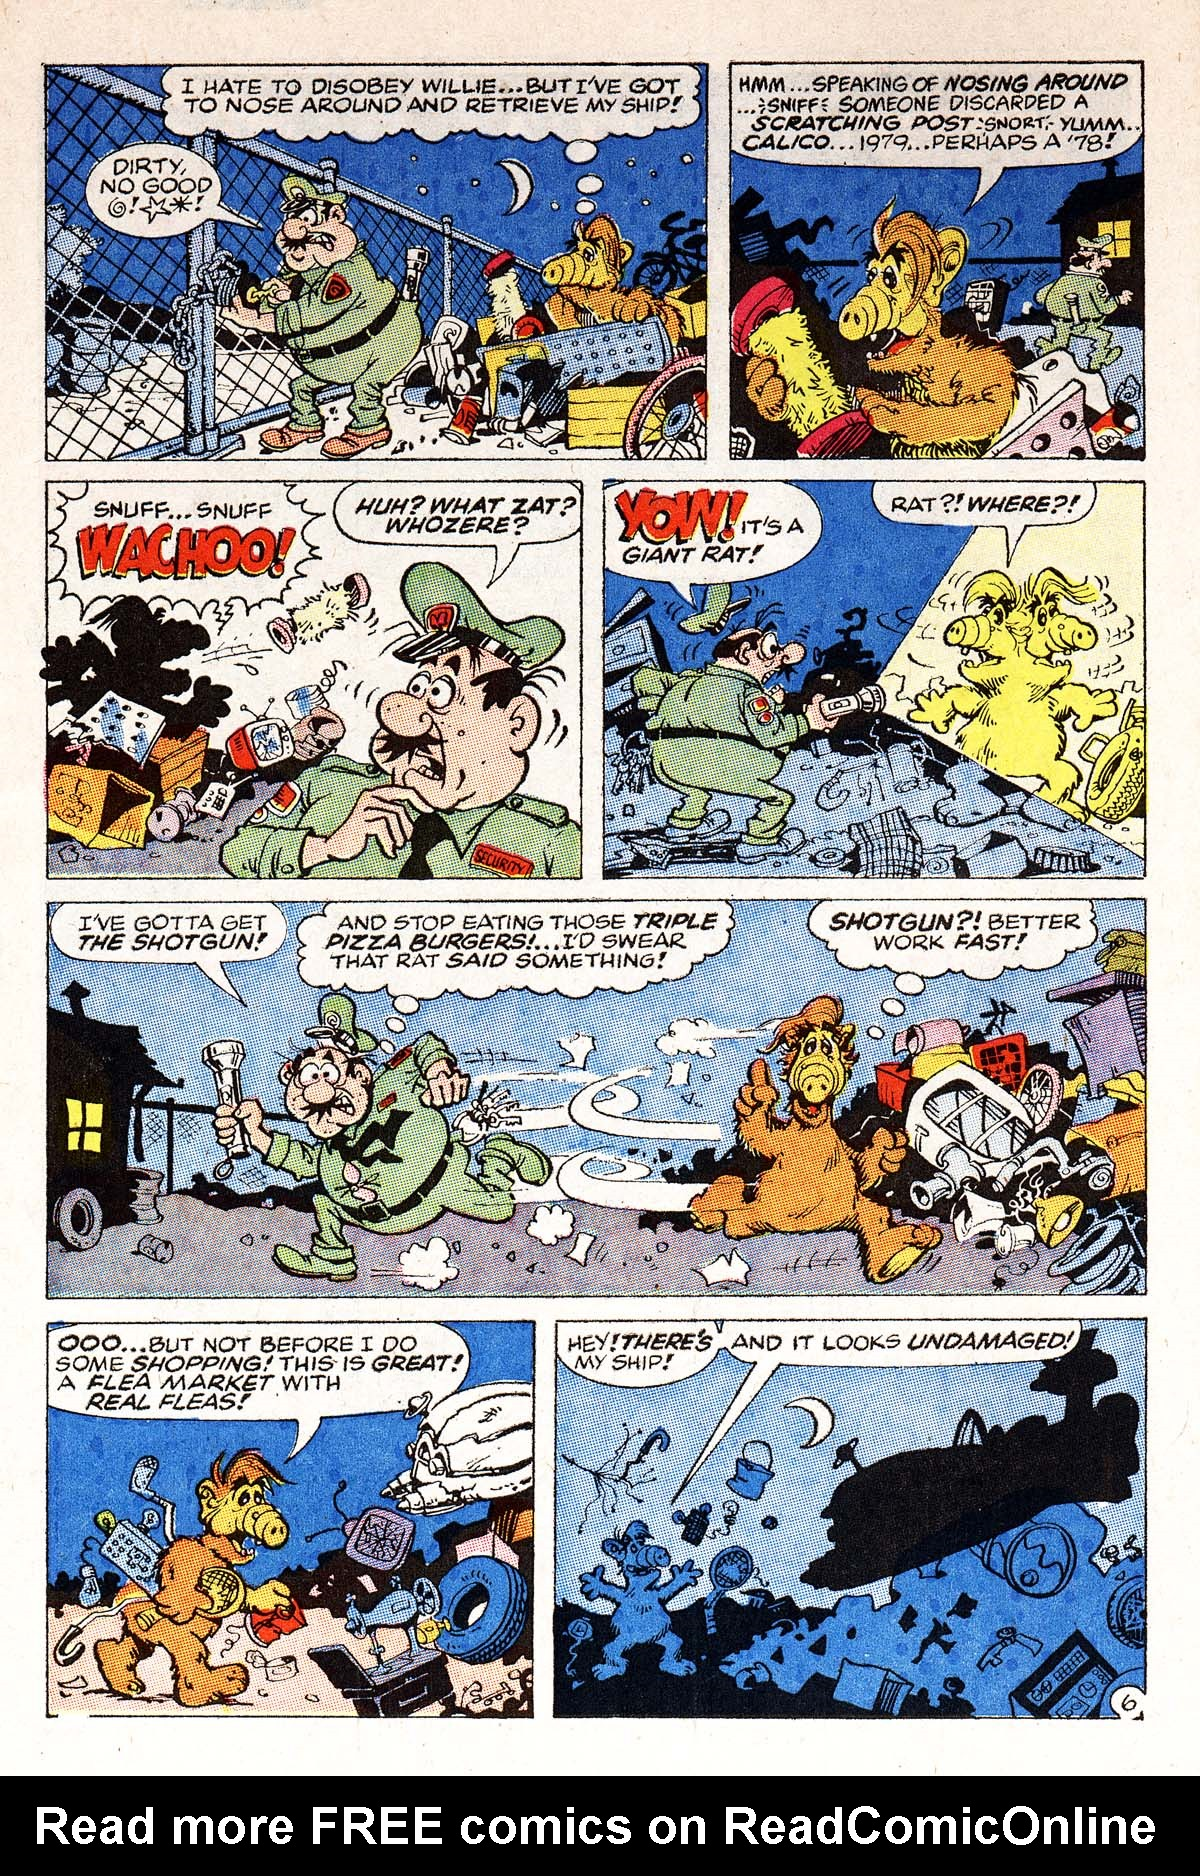 Read online ALF comic -  Issue #1 - 7